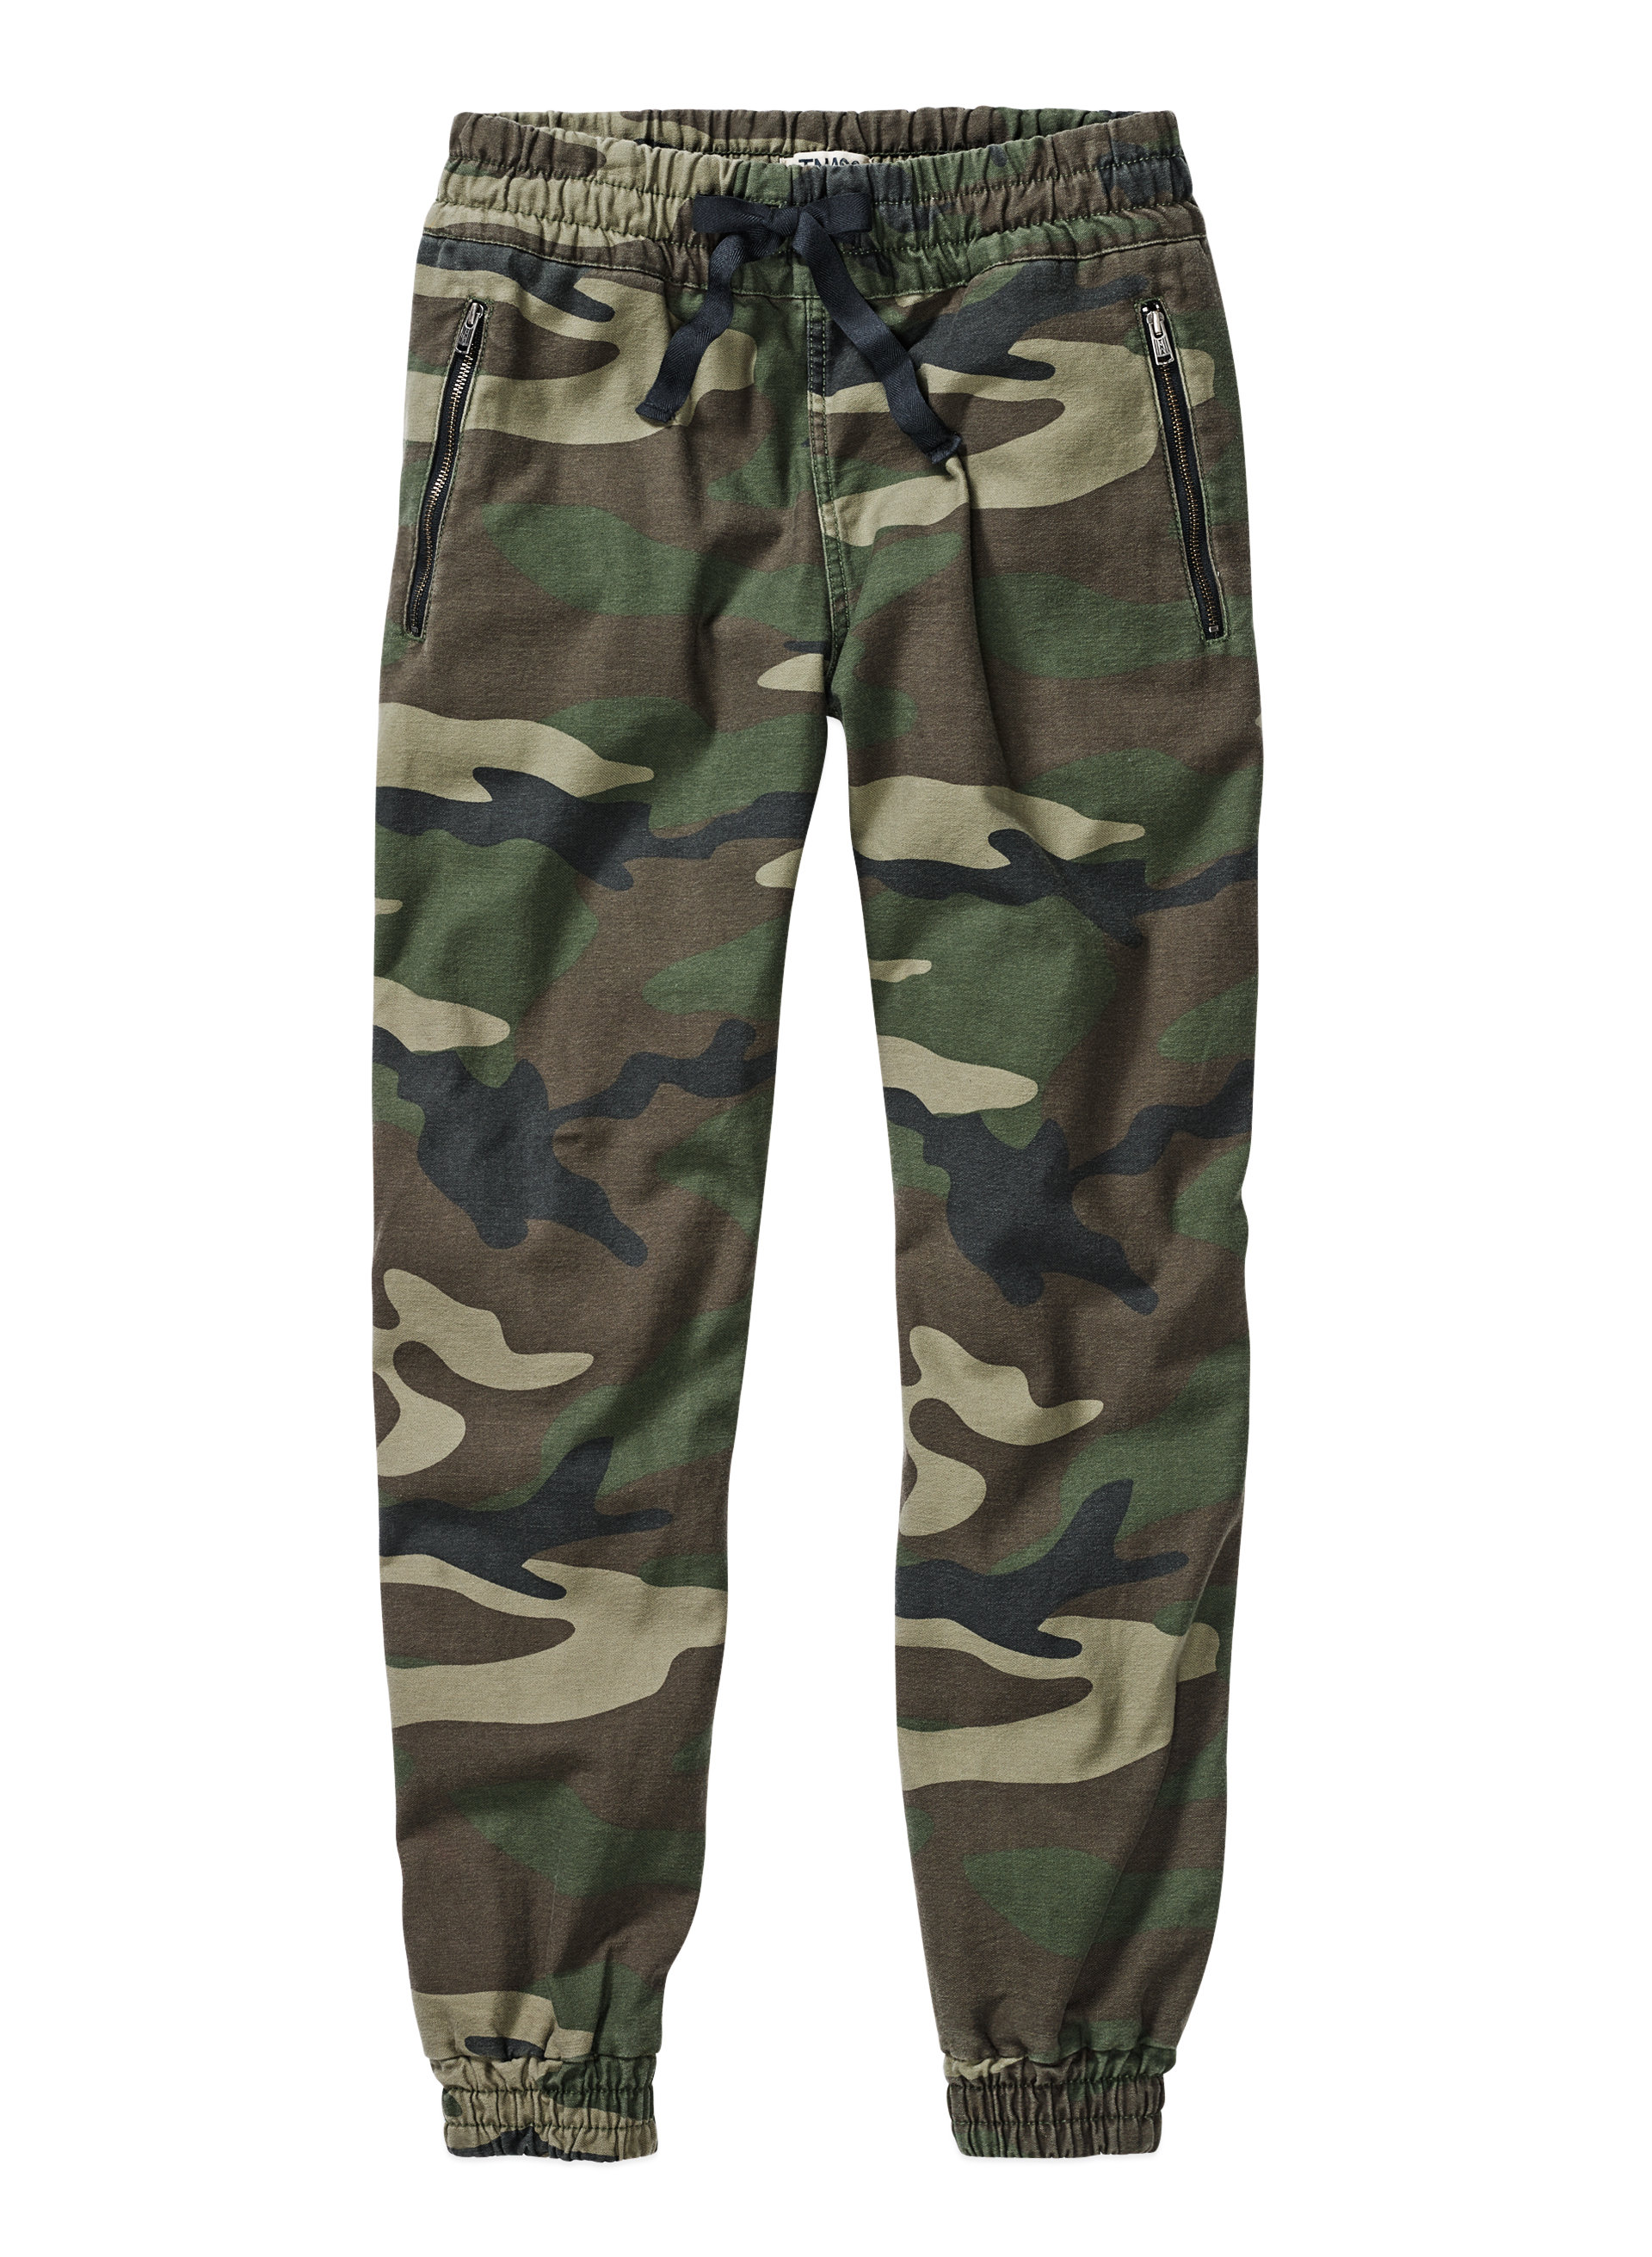 Camo pants are offered in a vast array of colors by today's outlets, with some like blue camo pants for women getting snatched up by trendsetters who find that they go well with unusual tops. Gray camo prints are a popular way to add an urban feel to any outfit.